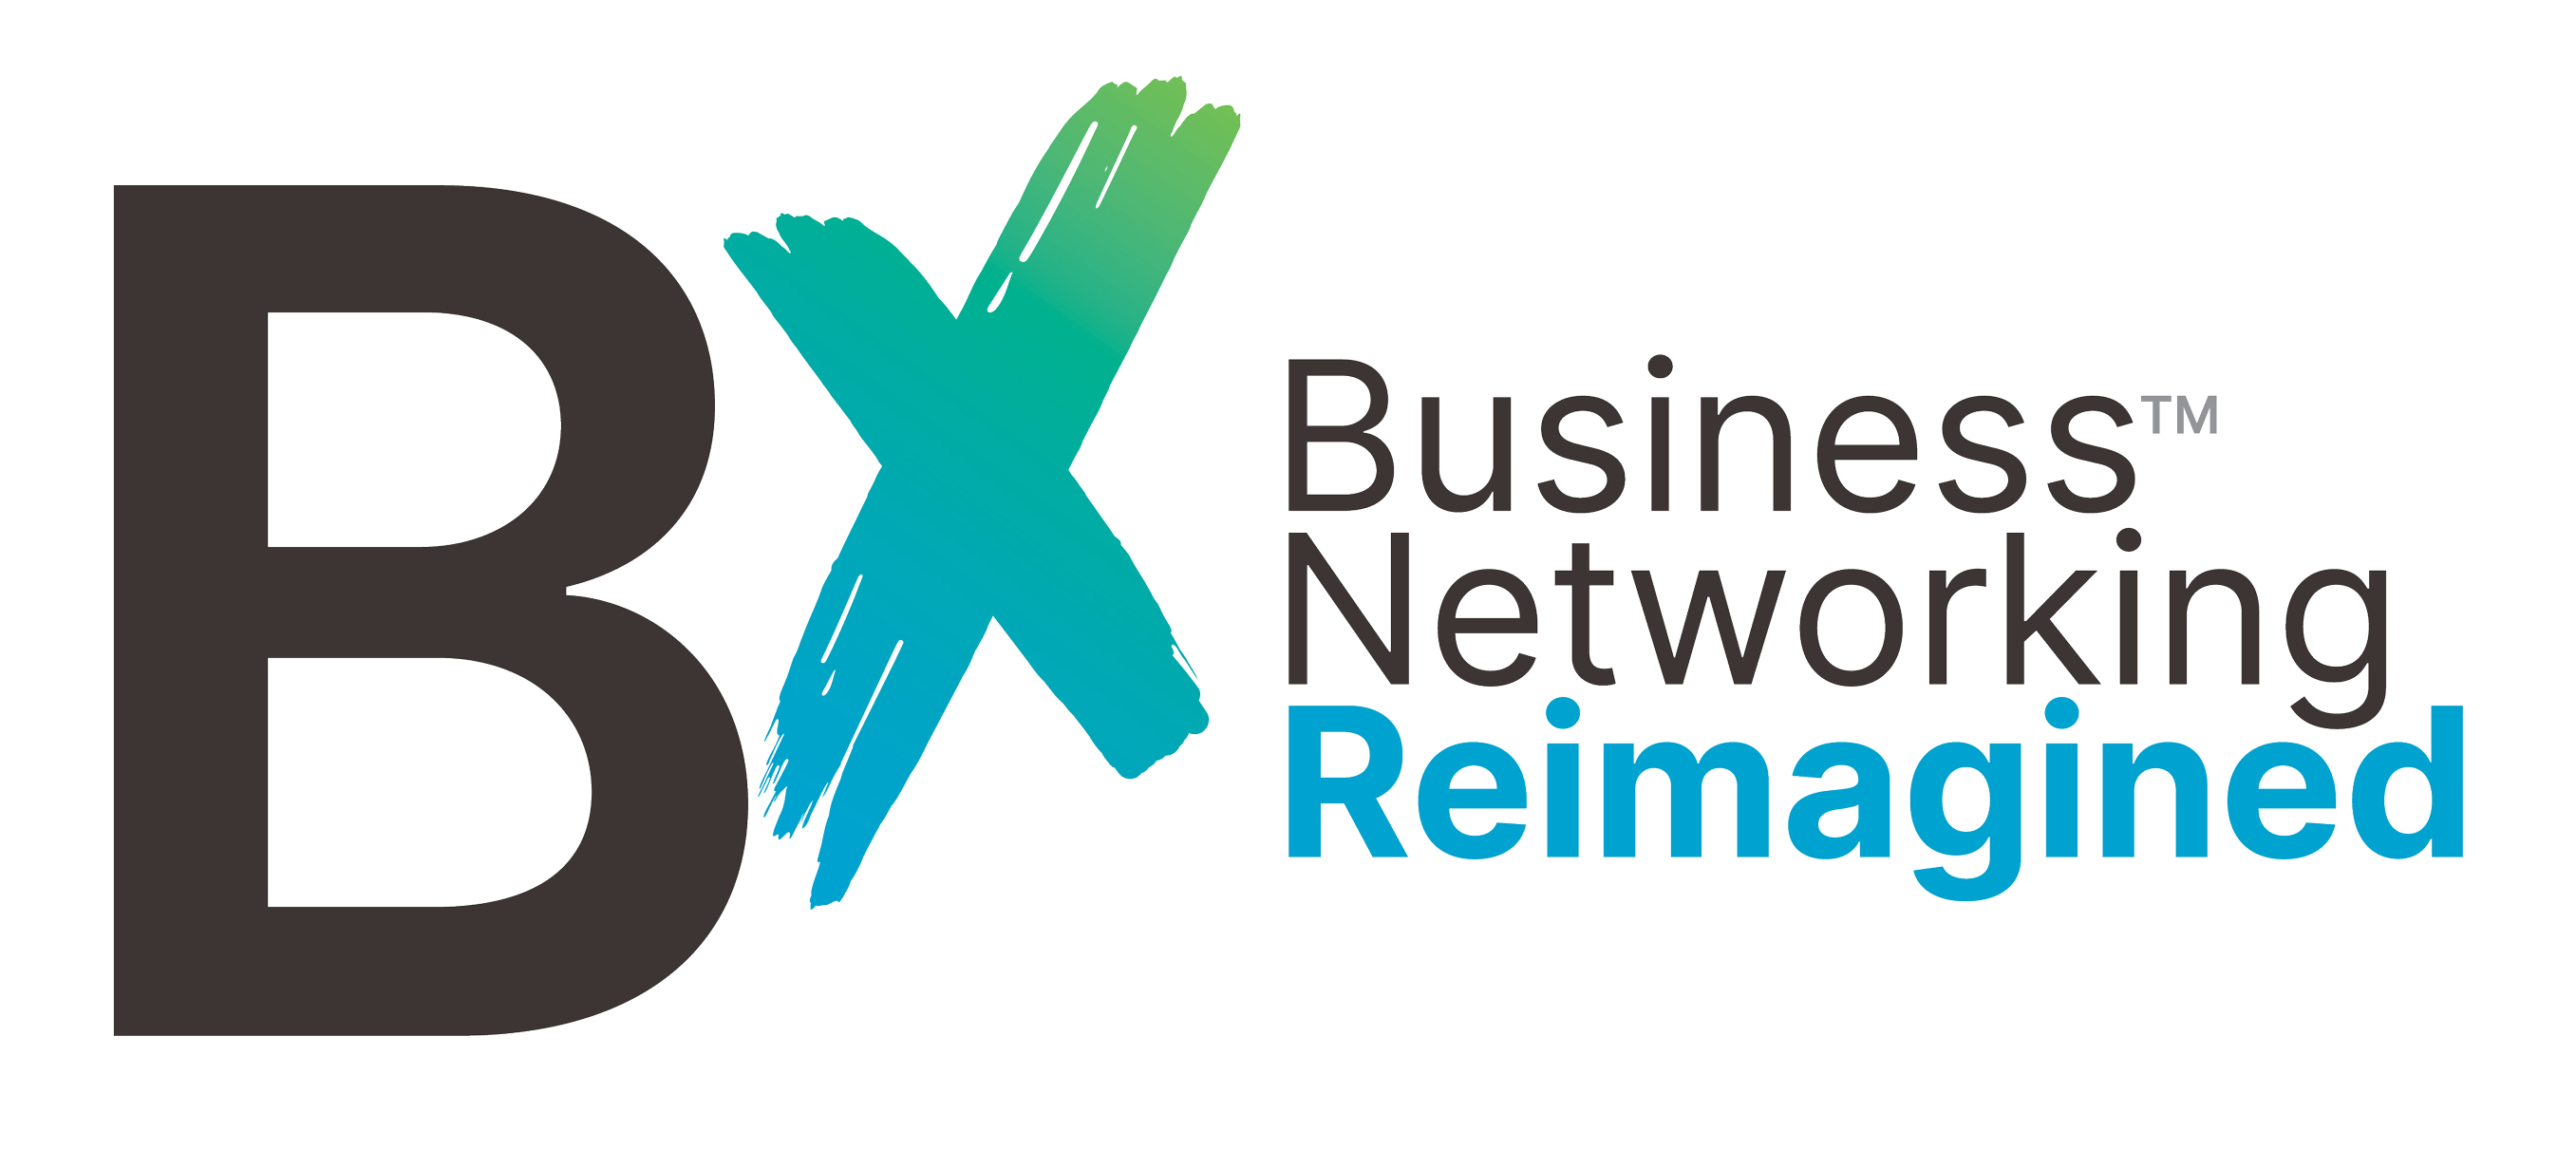 Bx Business Networking Reimagined